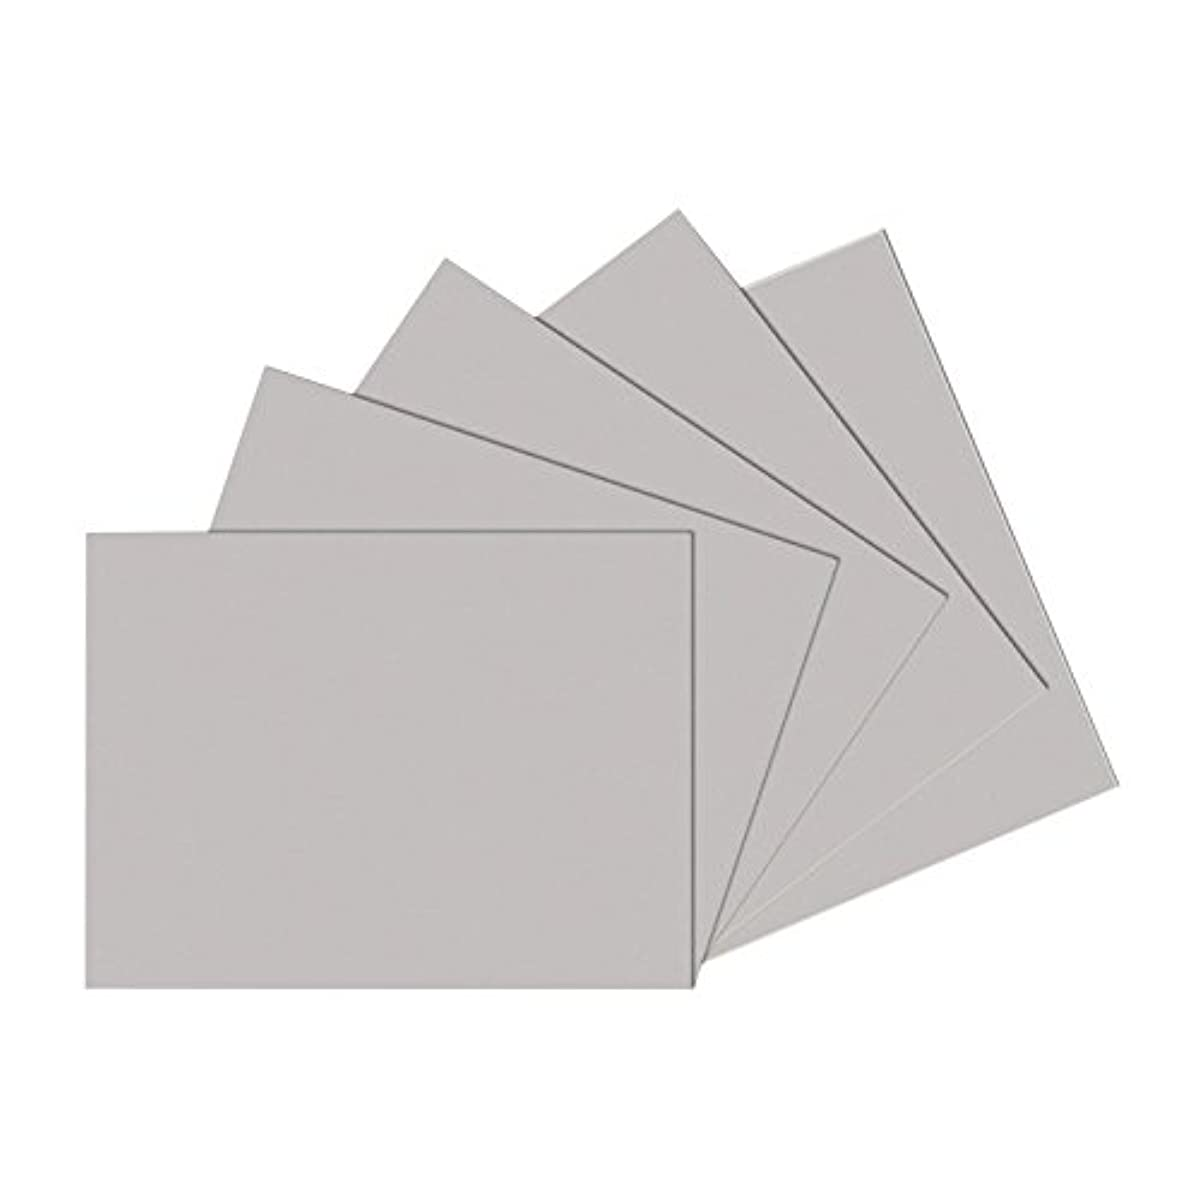 Sax Gray Drawing Paper, 80 lb., 12 x 18 Inches, Pearl Gray, 500 Sheets